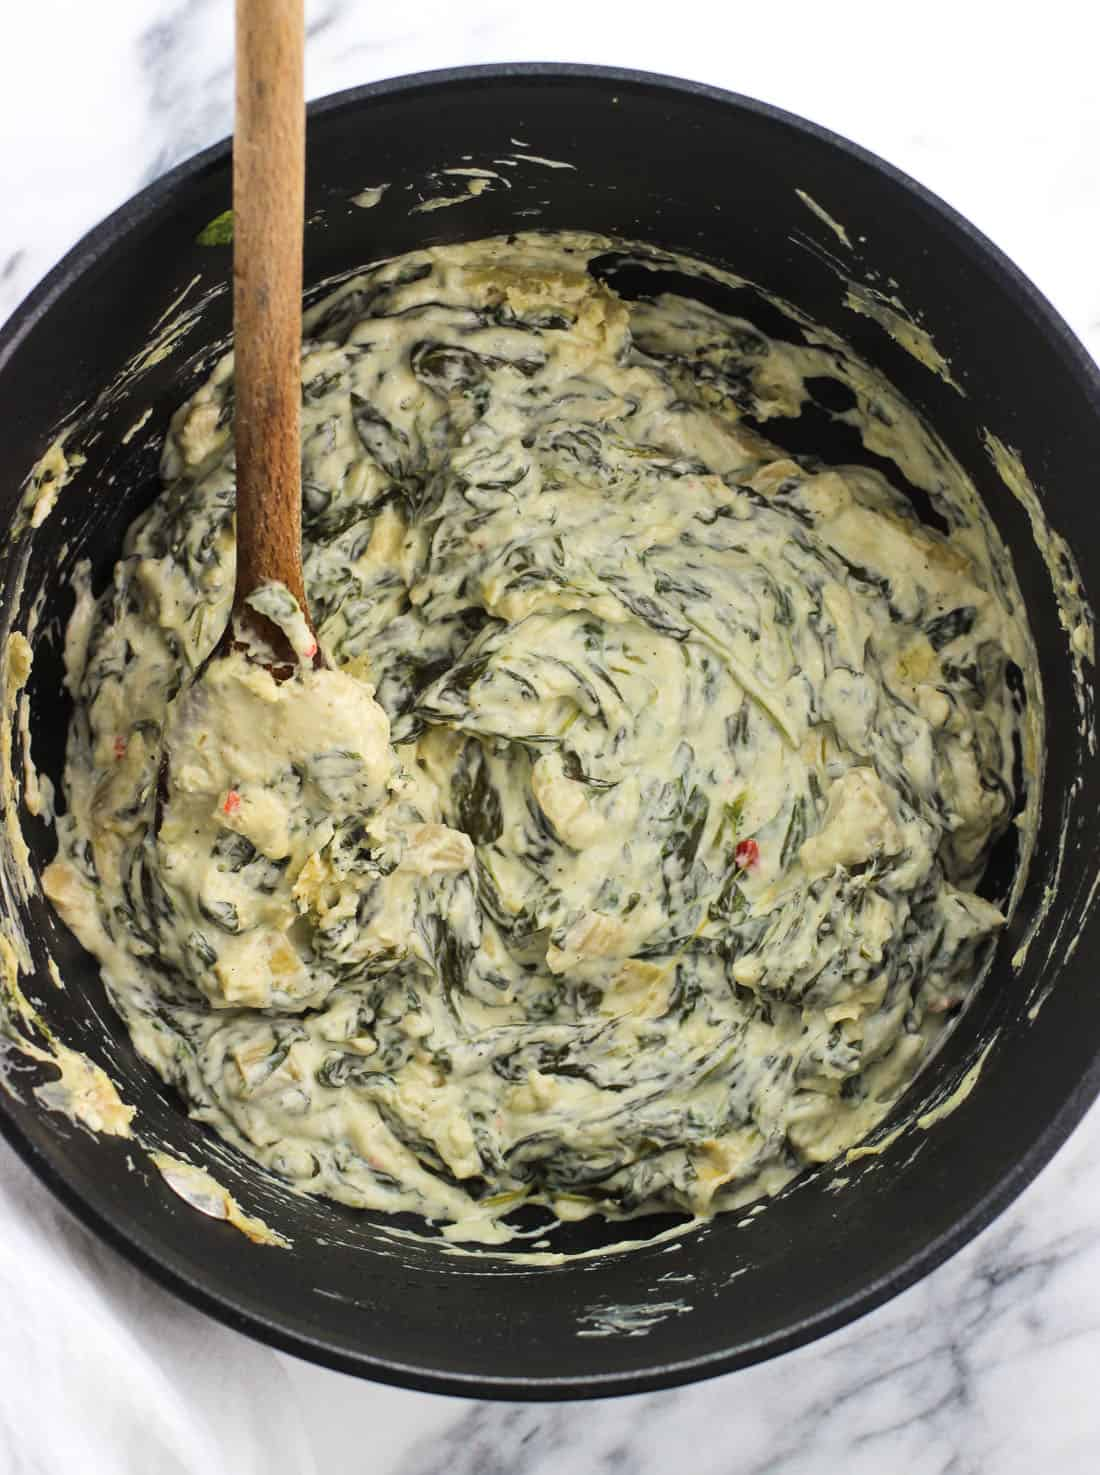 A medium saucepan filled with spinach artichoke dip with a wooden spoon